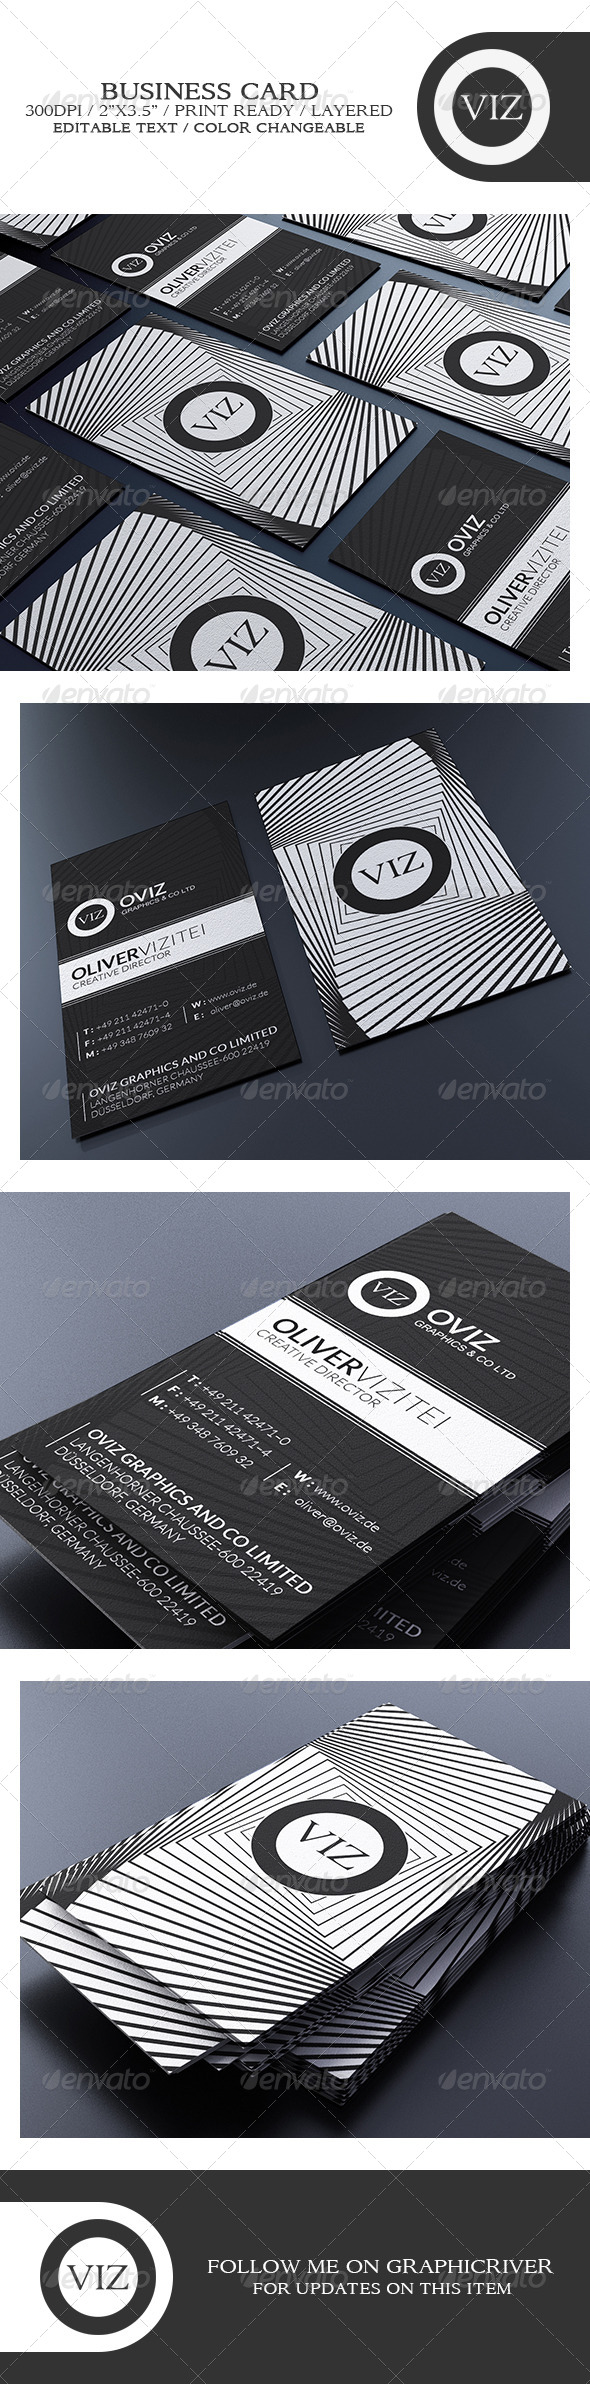 GraphicRiver Clean Black And White Business Card 8768335